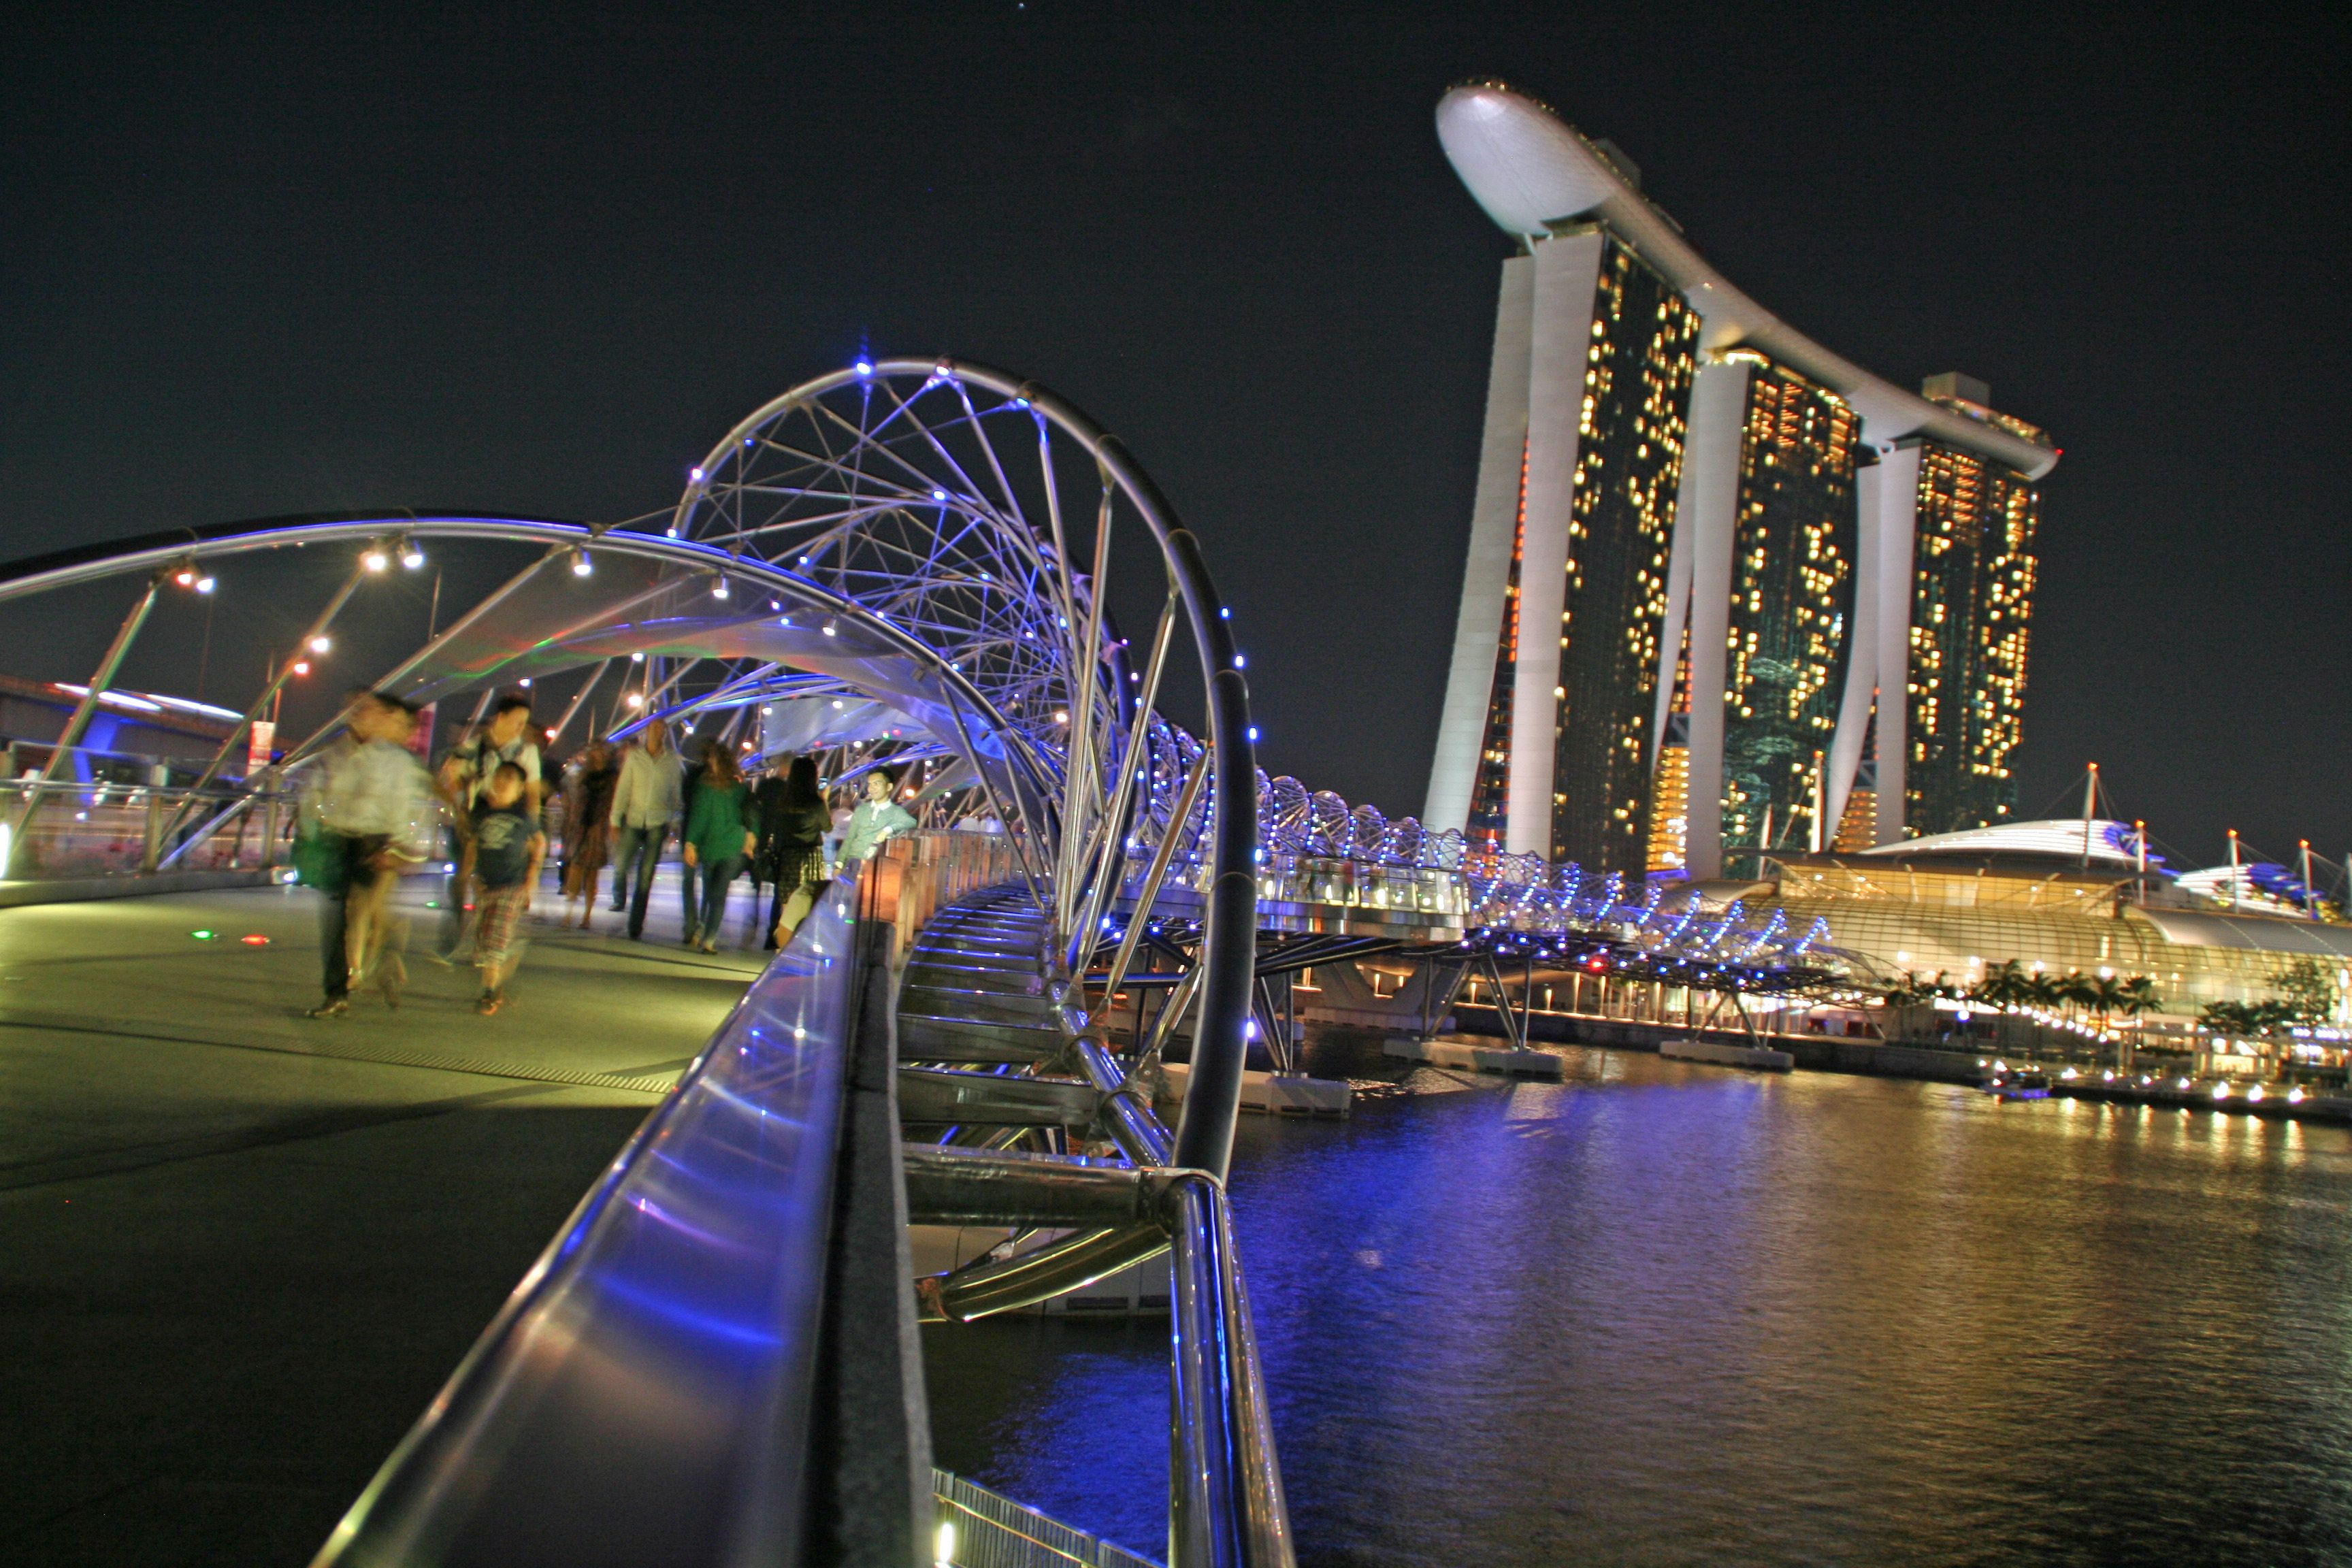 542ba3e1b5c49a021d66312a37be8f5a - Distance From Marina Bay Sands To Gardens By The Bay